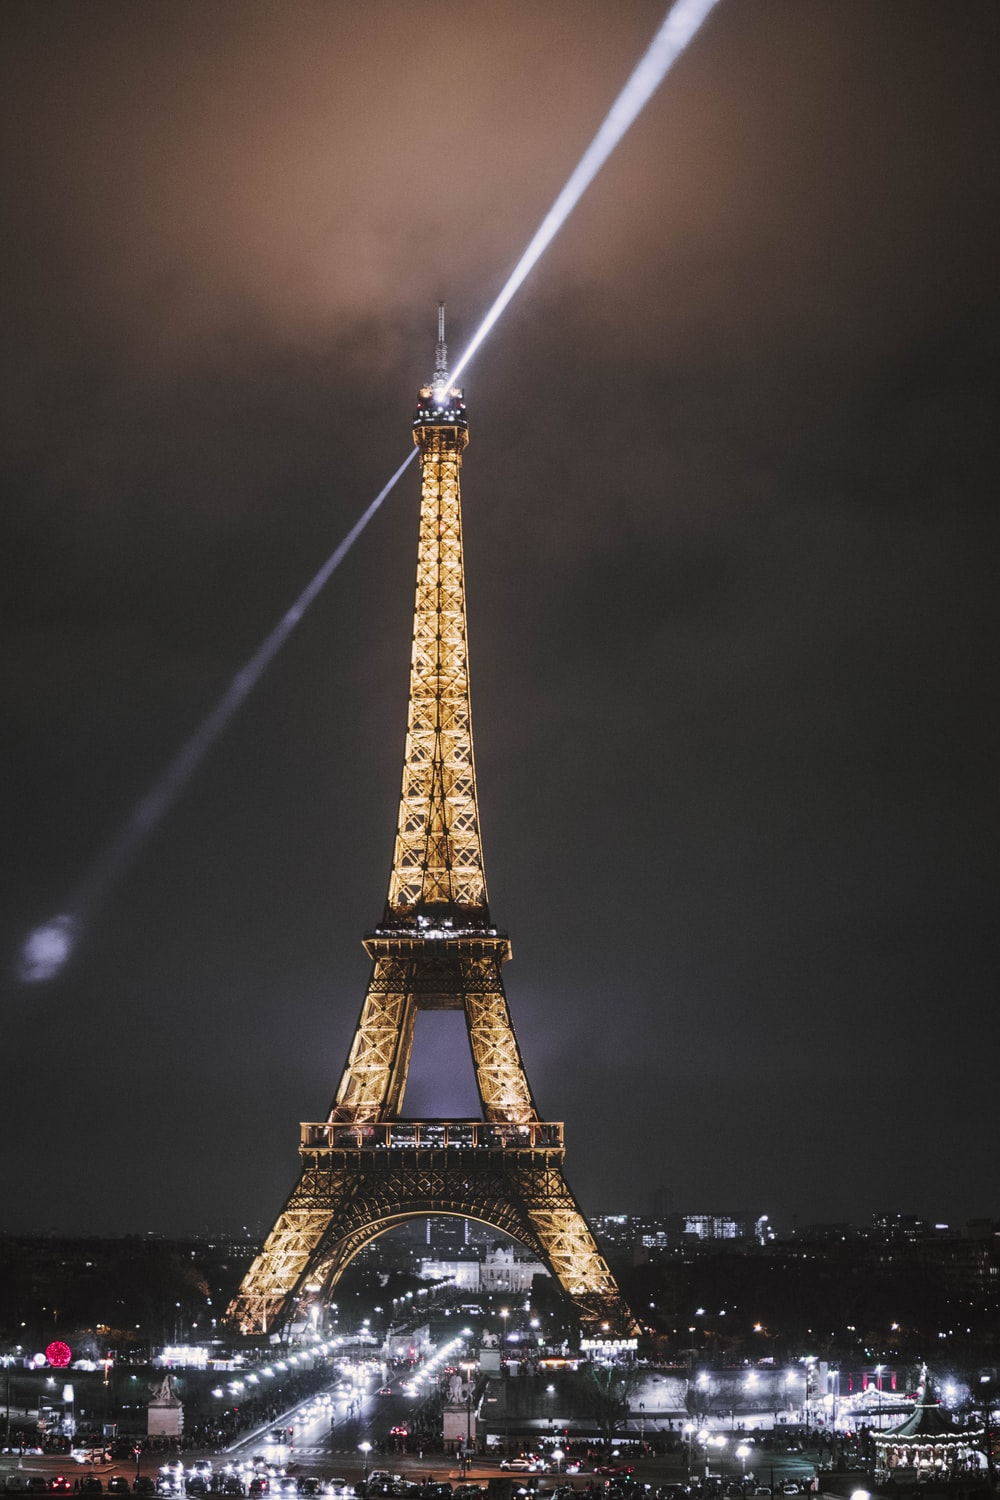 lighted Eiffel Tower of Paris during nighttime